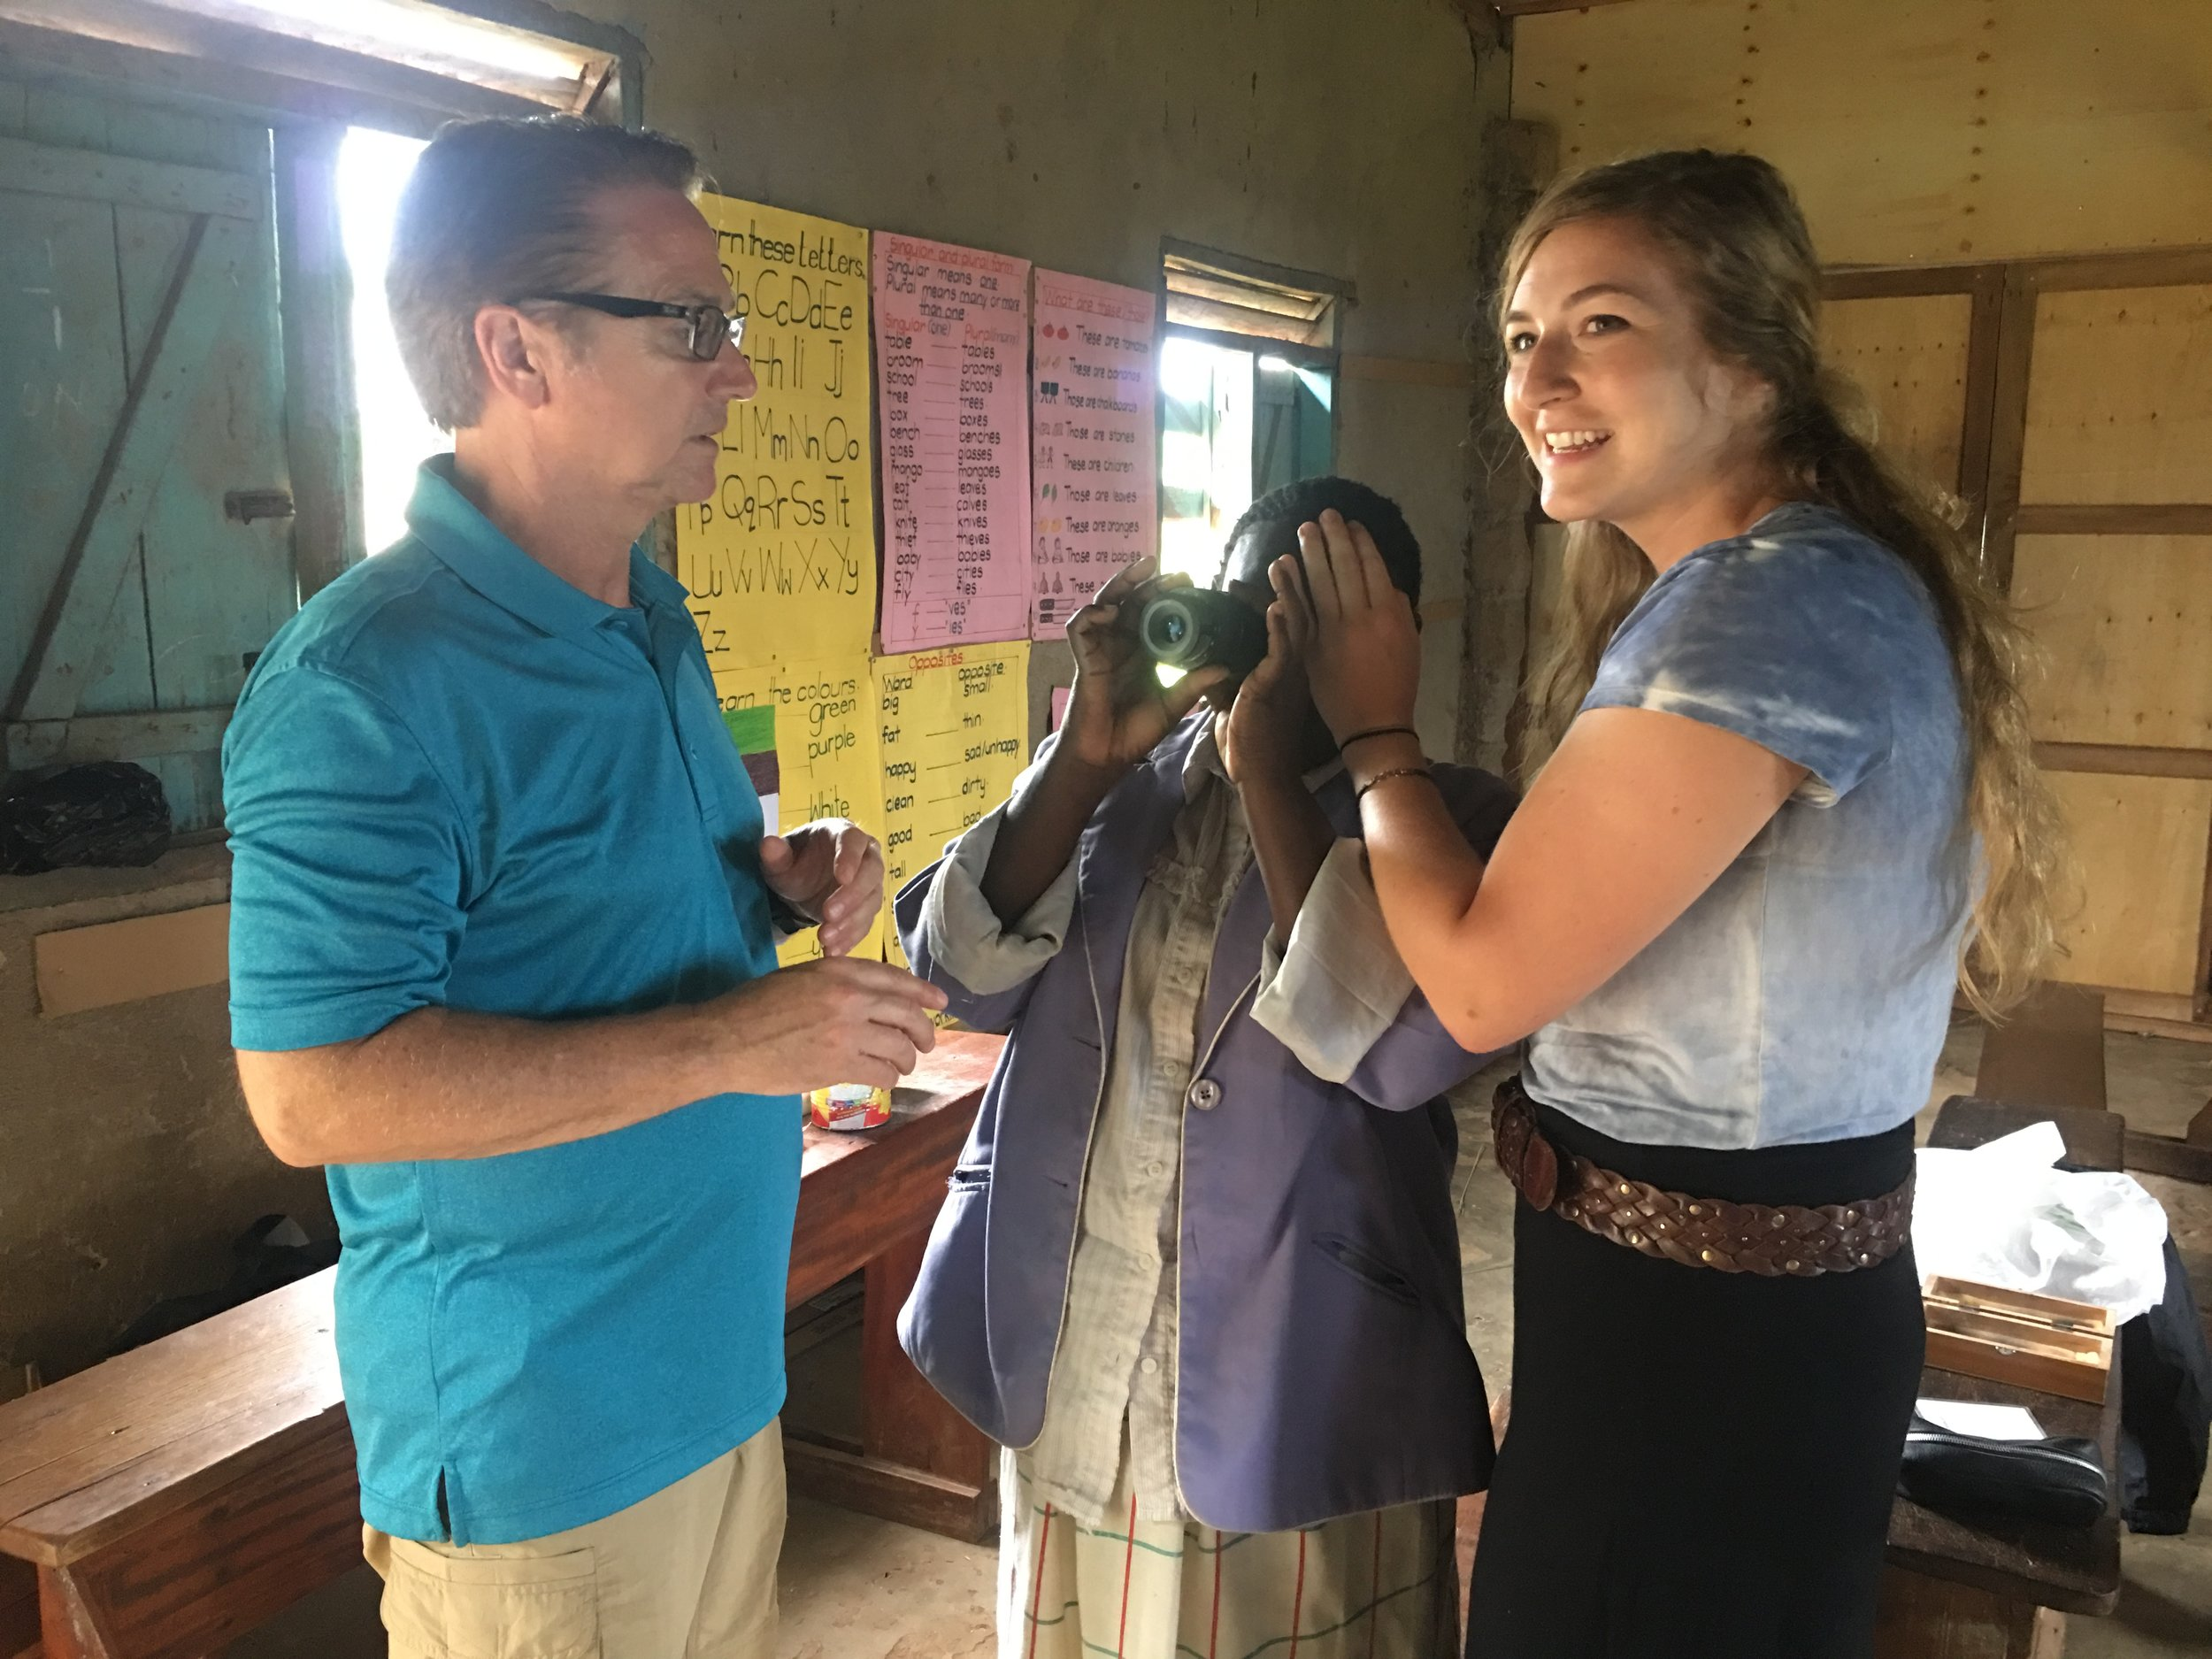 Dr. John Miller and his daughter, Jordan (a member of the G.O.D. East Africa team) conduct an exam on a teacher using a focometer (a device created specifically for third world environments).